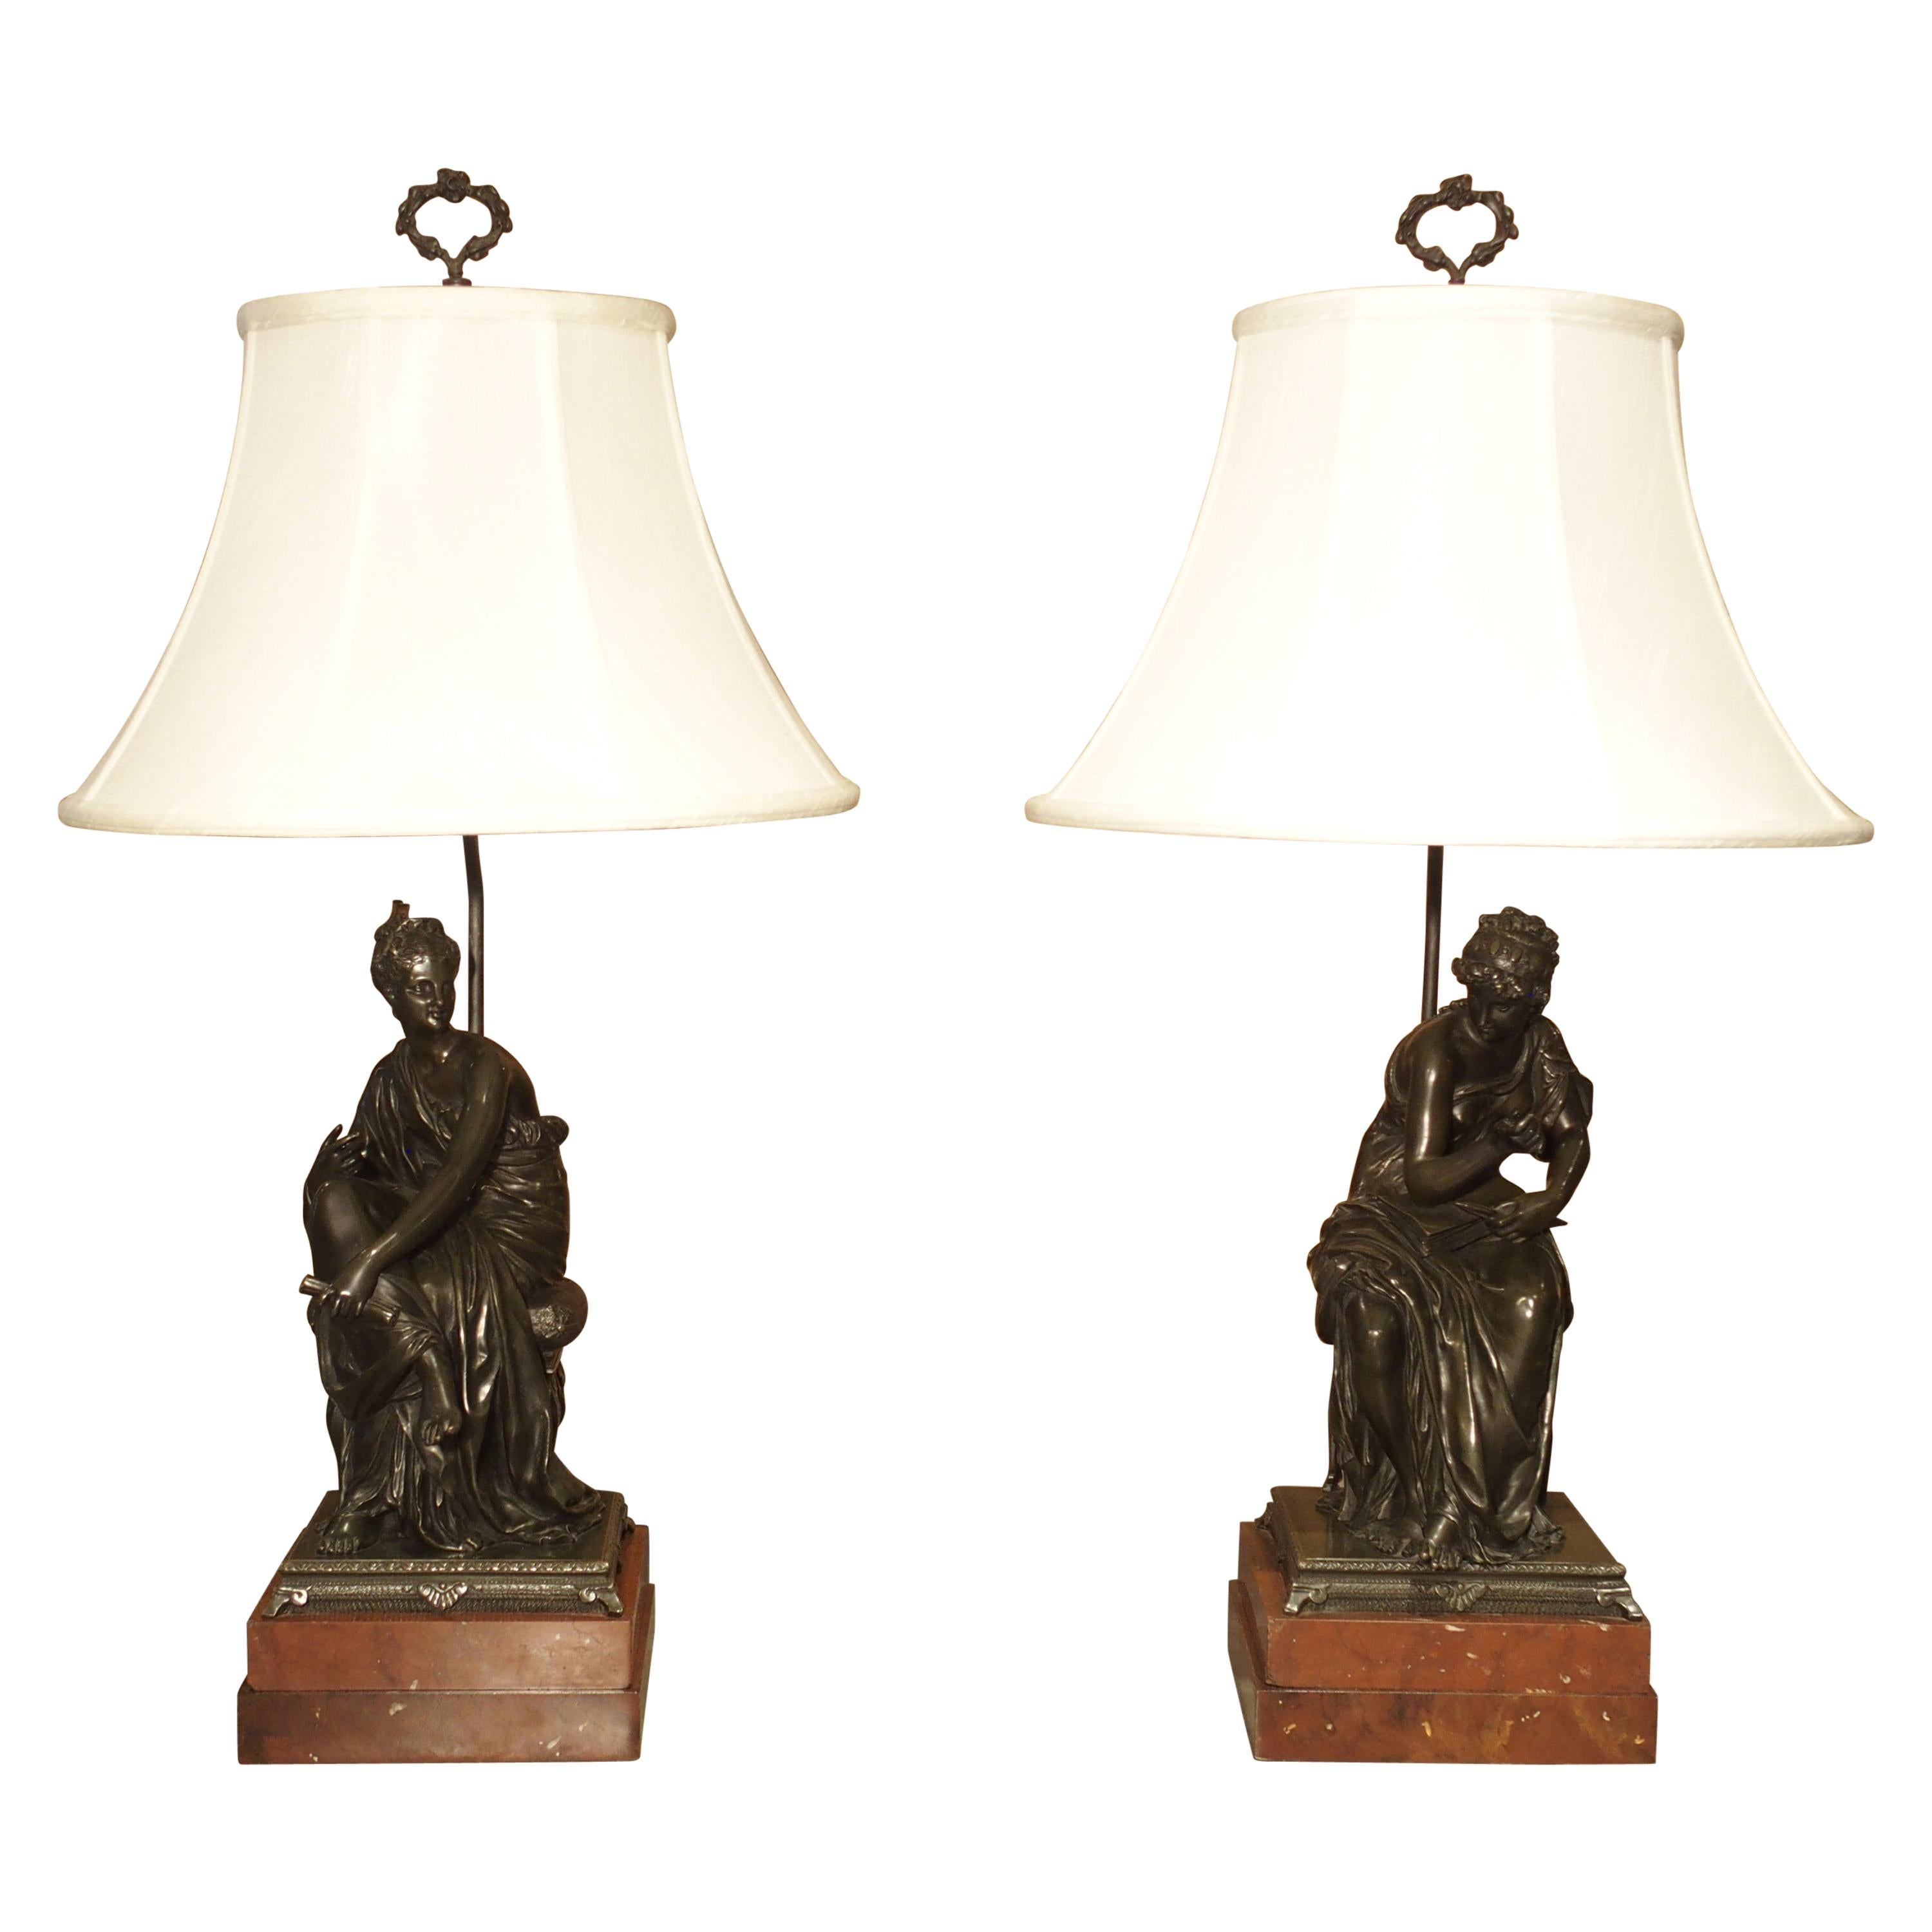 Pair of Antique Classical French Bronze Figural Table Lamps with Silk Shades